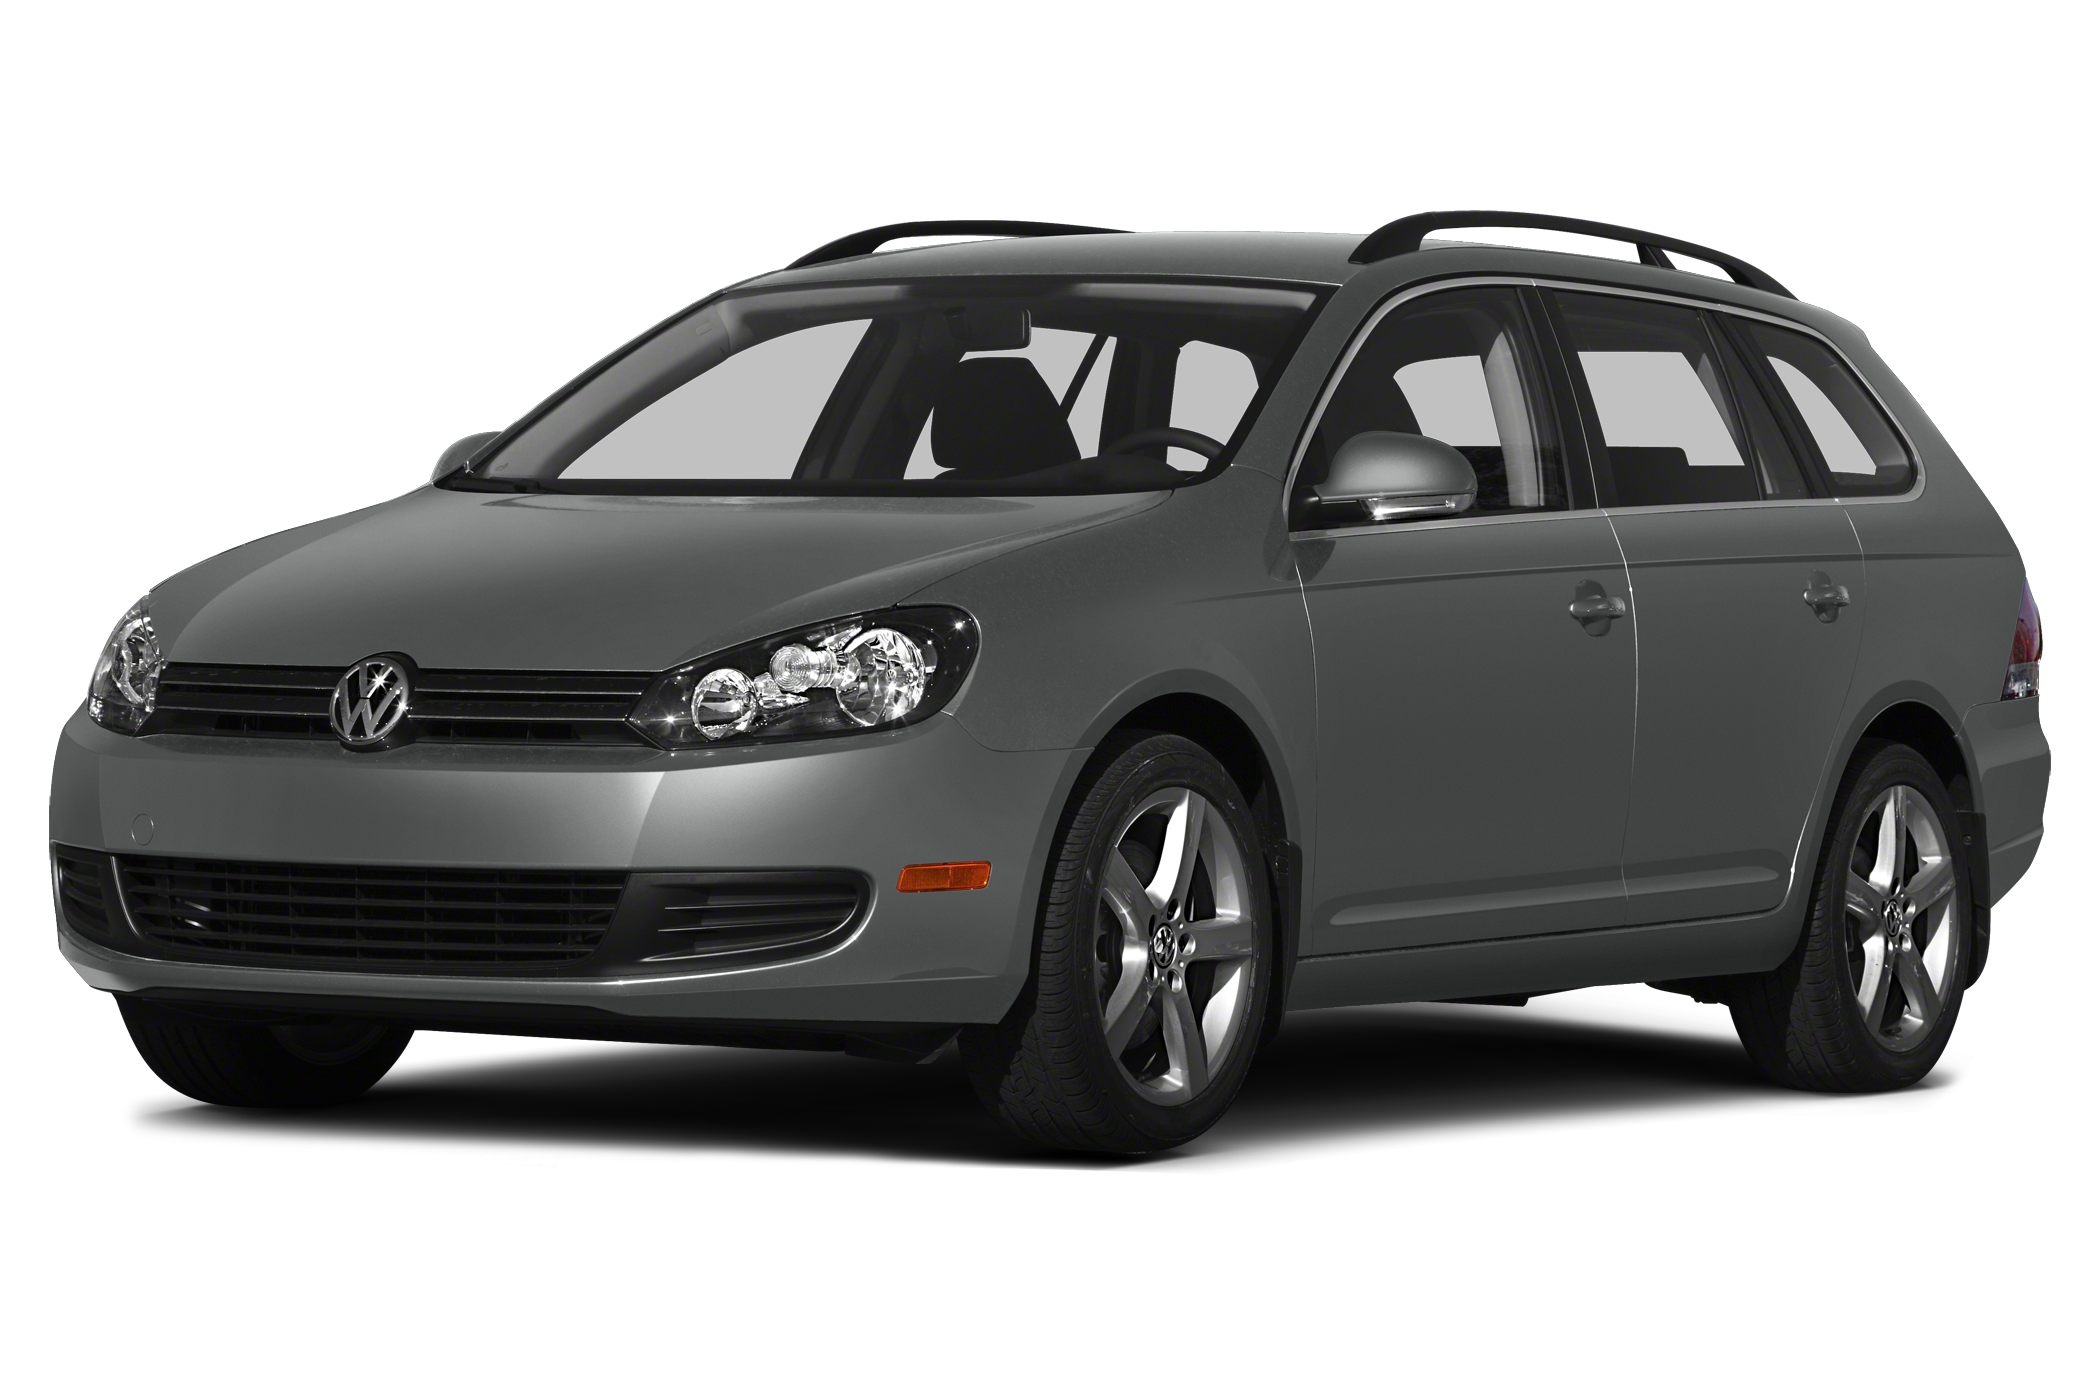 2014 Volkswagen Jetta SportWagen TDI Wagon for sale in Post Falls for $28,520 with 39,884 miles.